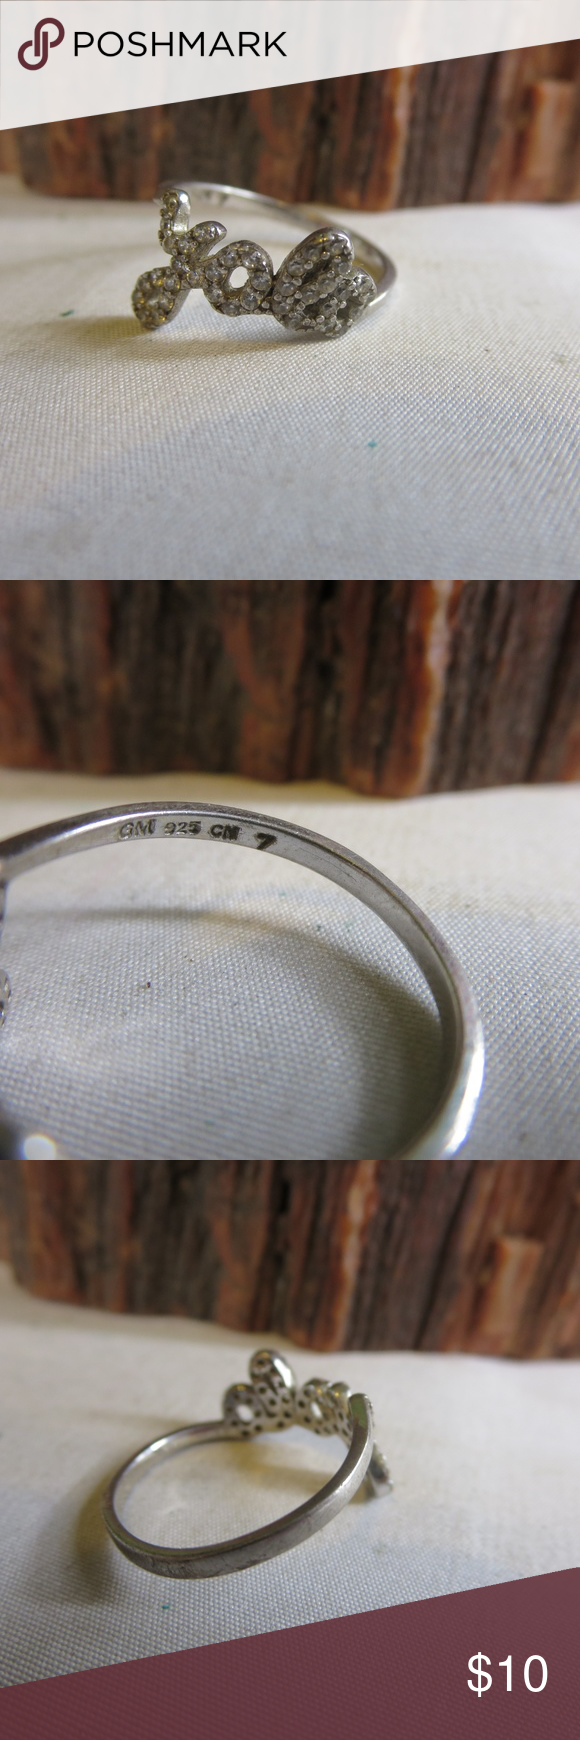 925 Cn Gm : Sterling, Silver, Crystal, Size:, Weighs, Grams., Hallmarks:, Condition:, Womens, Jewelry, Rings,, Rings